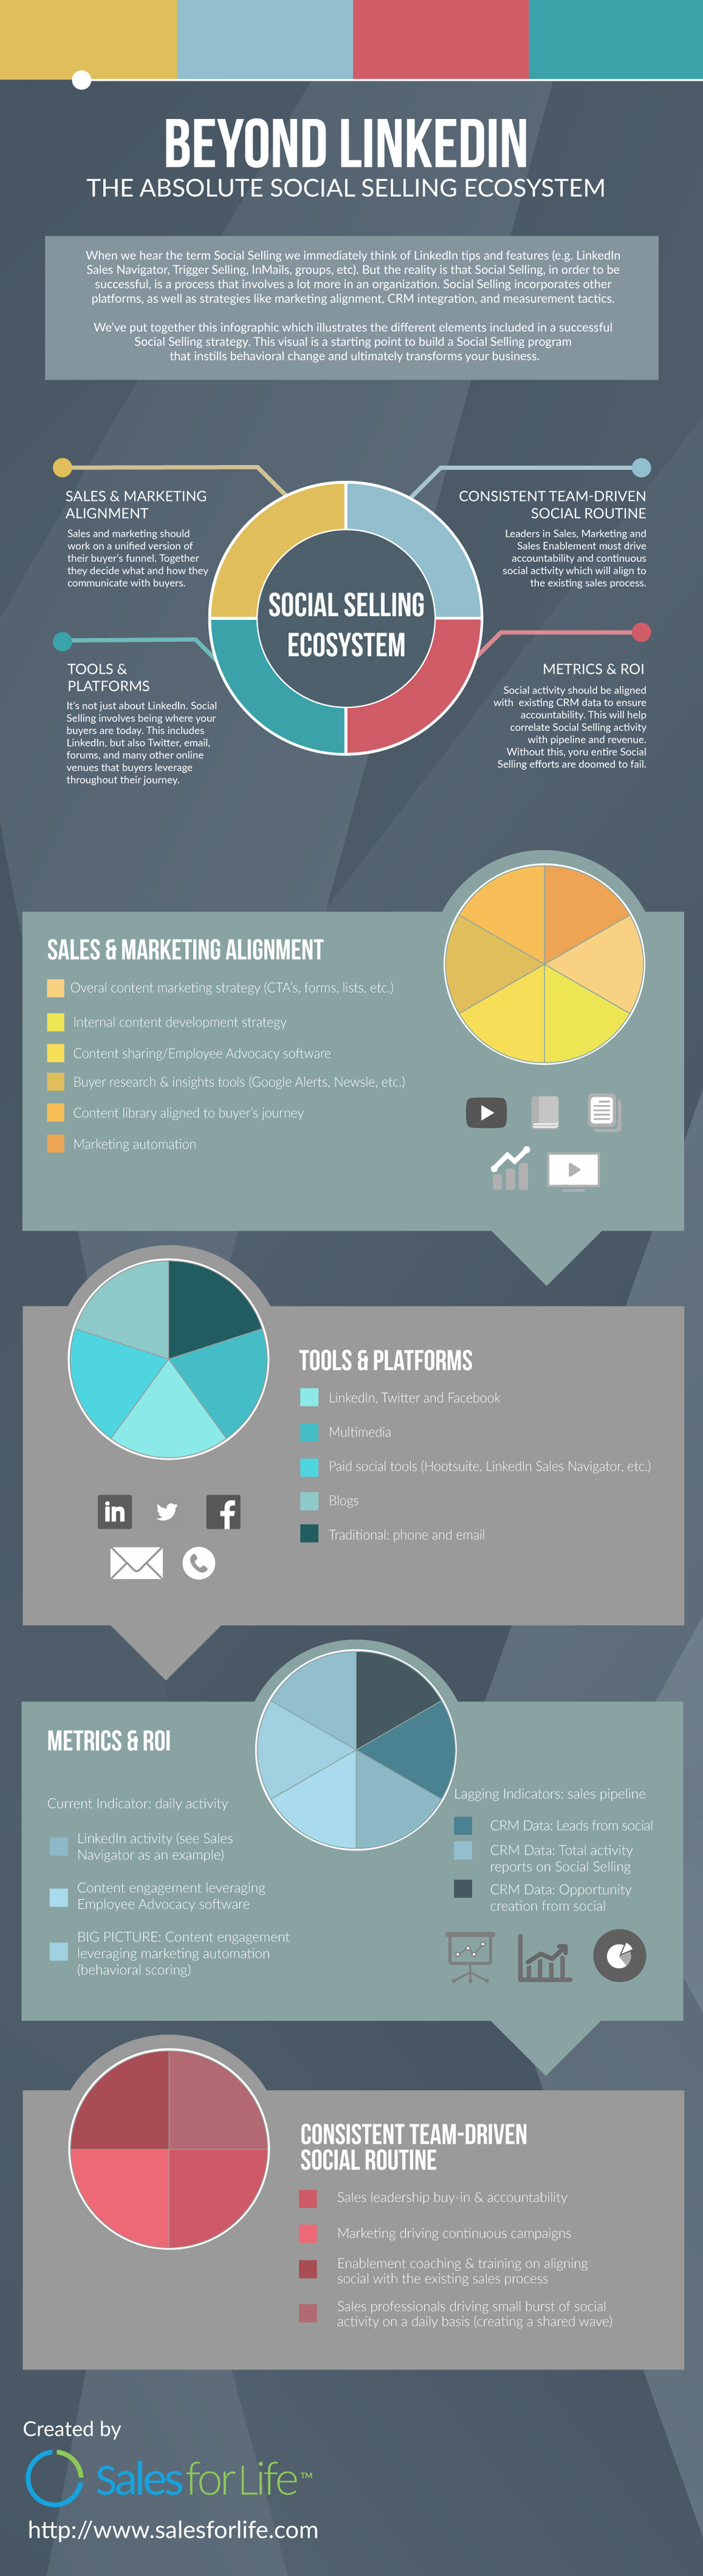 Beyond LinkedIn The Absolute Social Selling Ecosystem [Infographic]